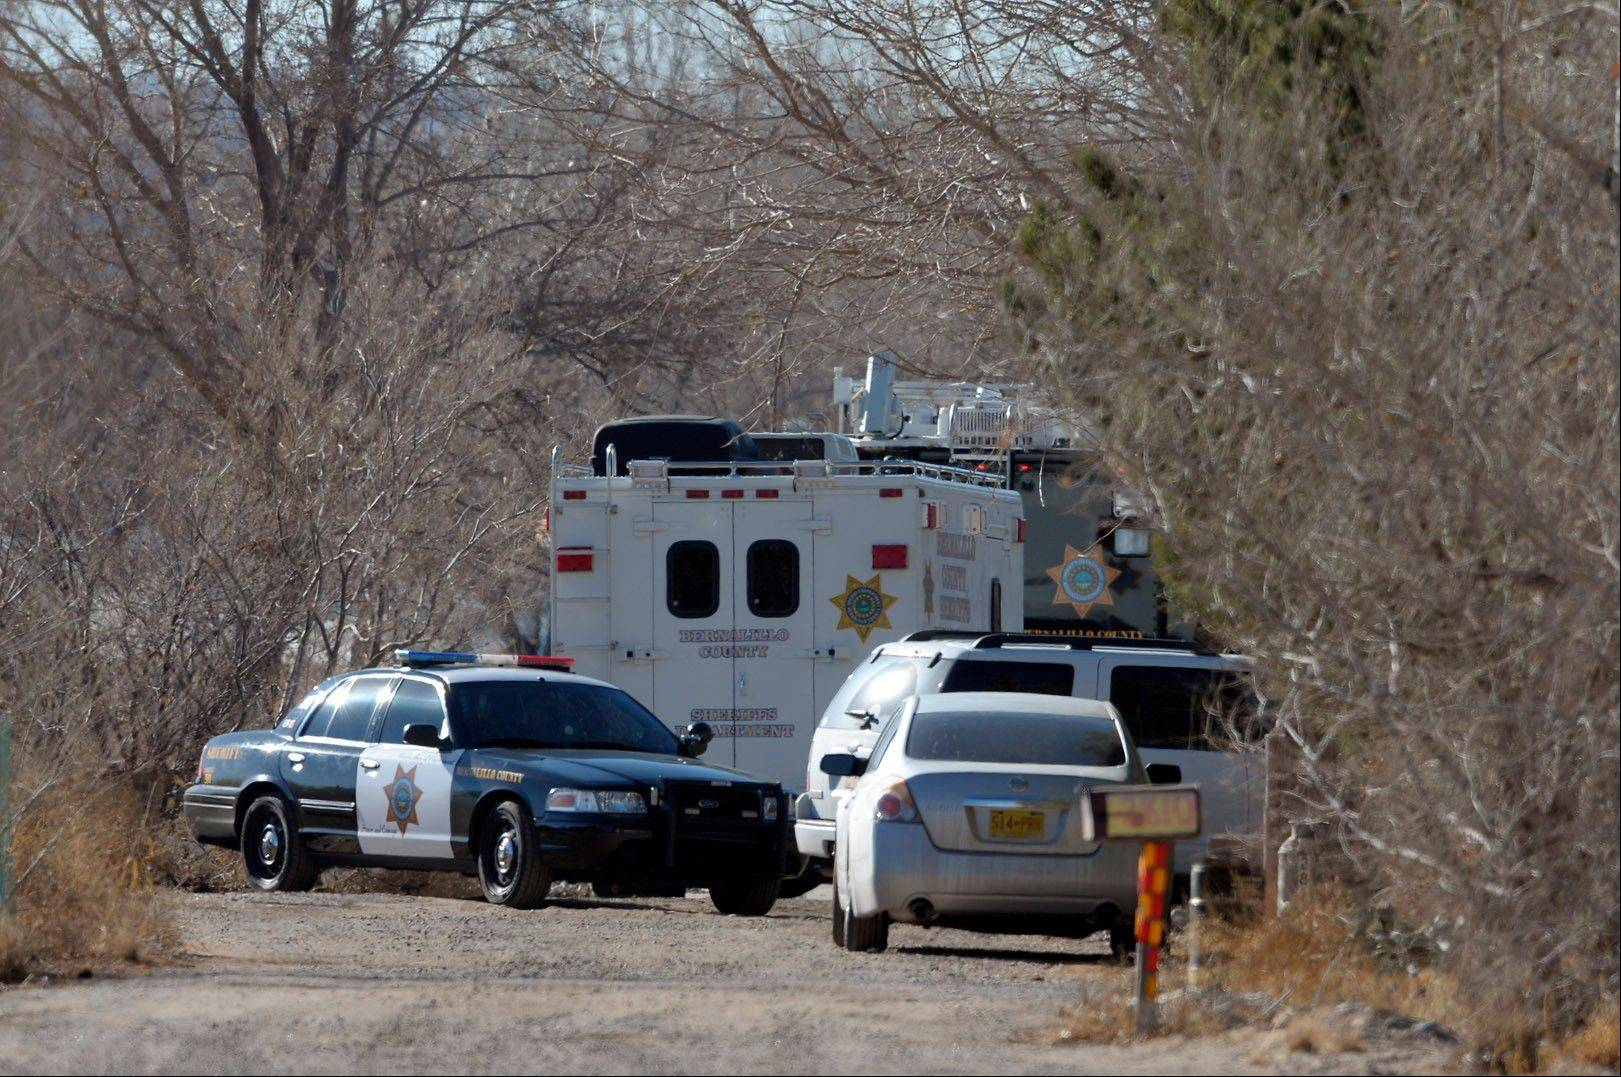 Deputies and crime scene personnel work the scene of a mass shooting near Albuquerque, N.M., Sunday. Authorities said a teenage boy fatally shot two adults and three children at a rural home.